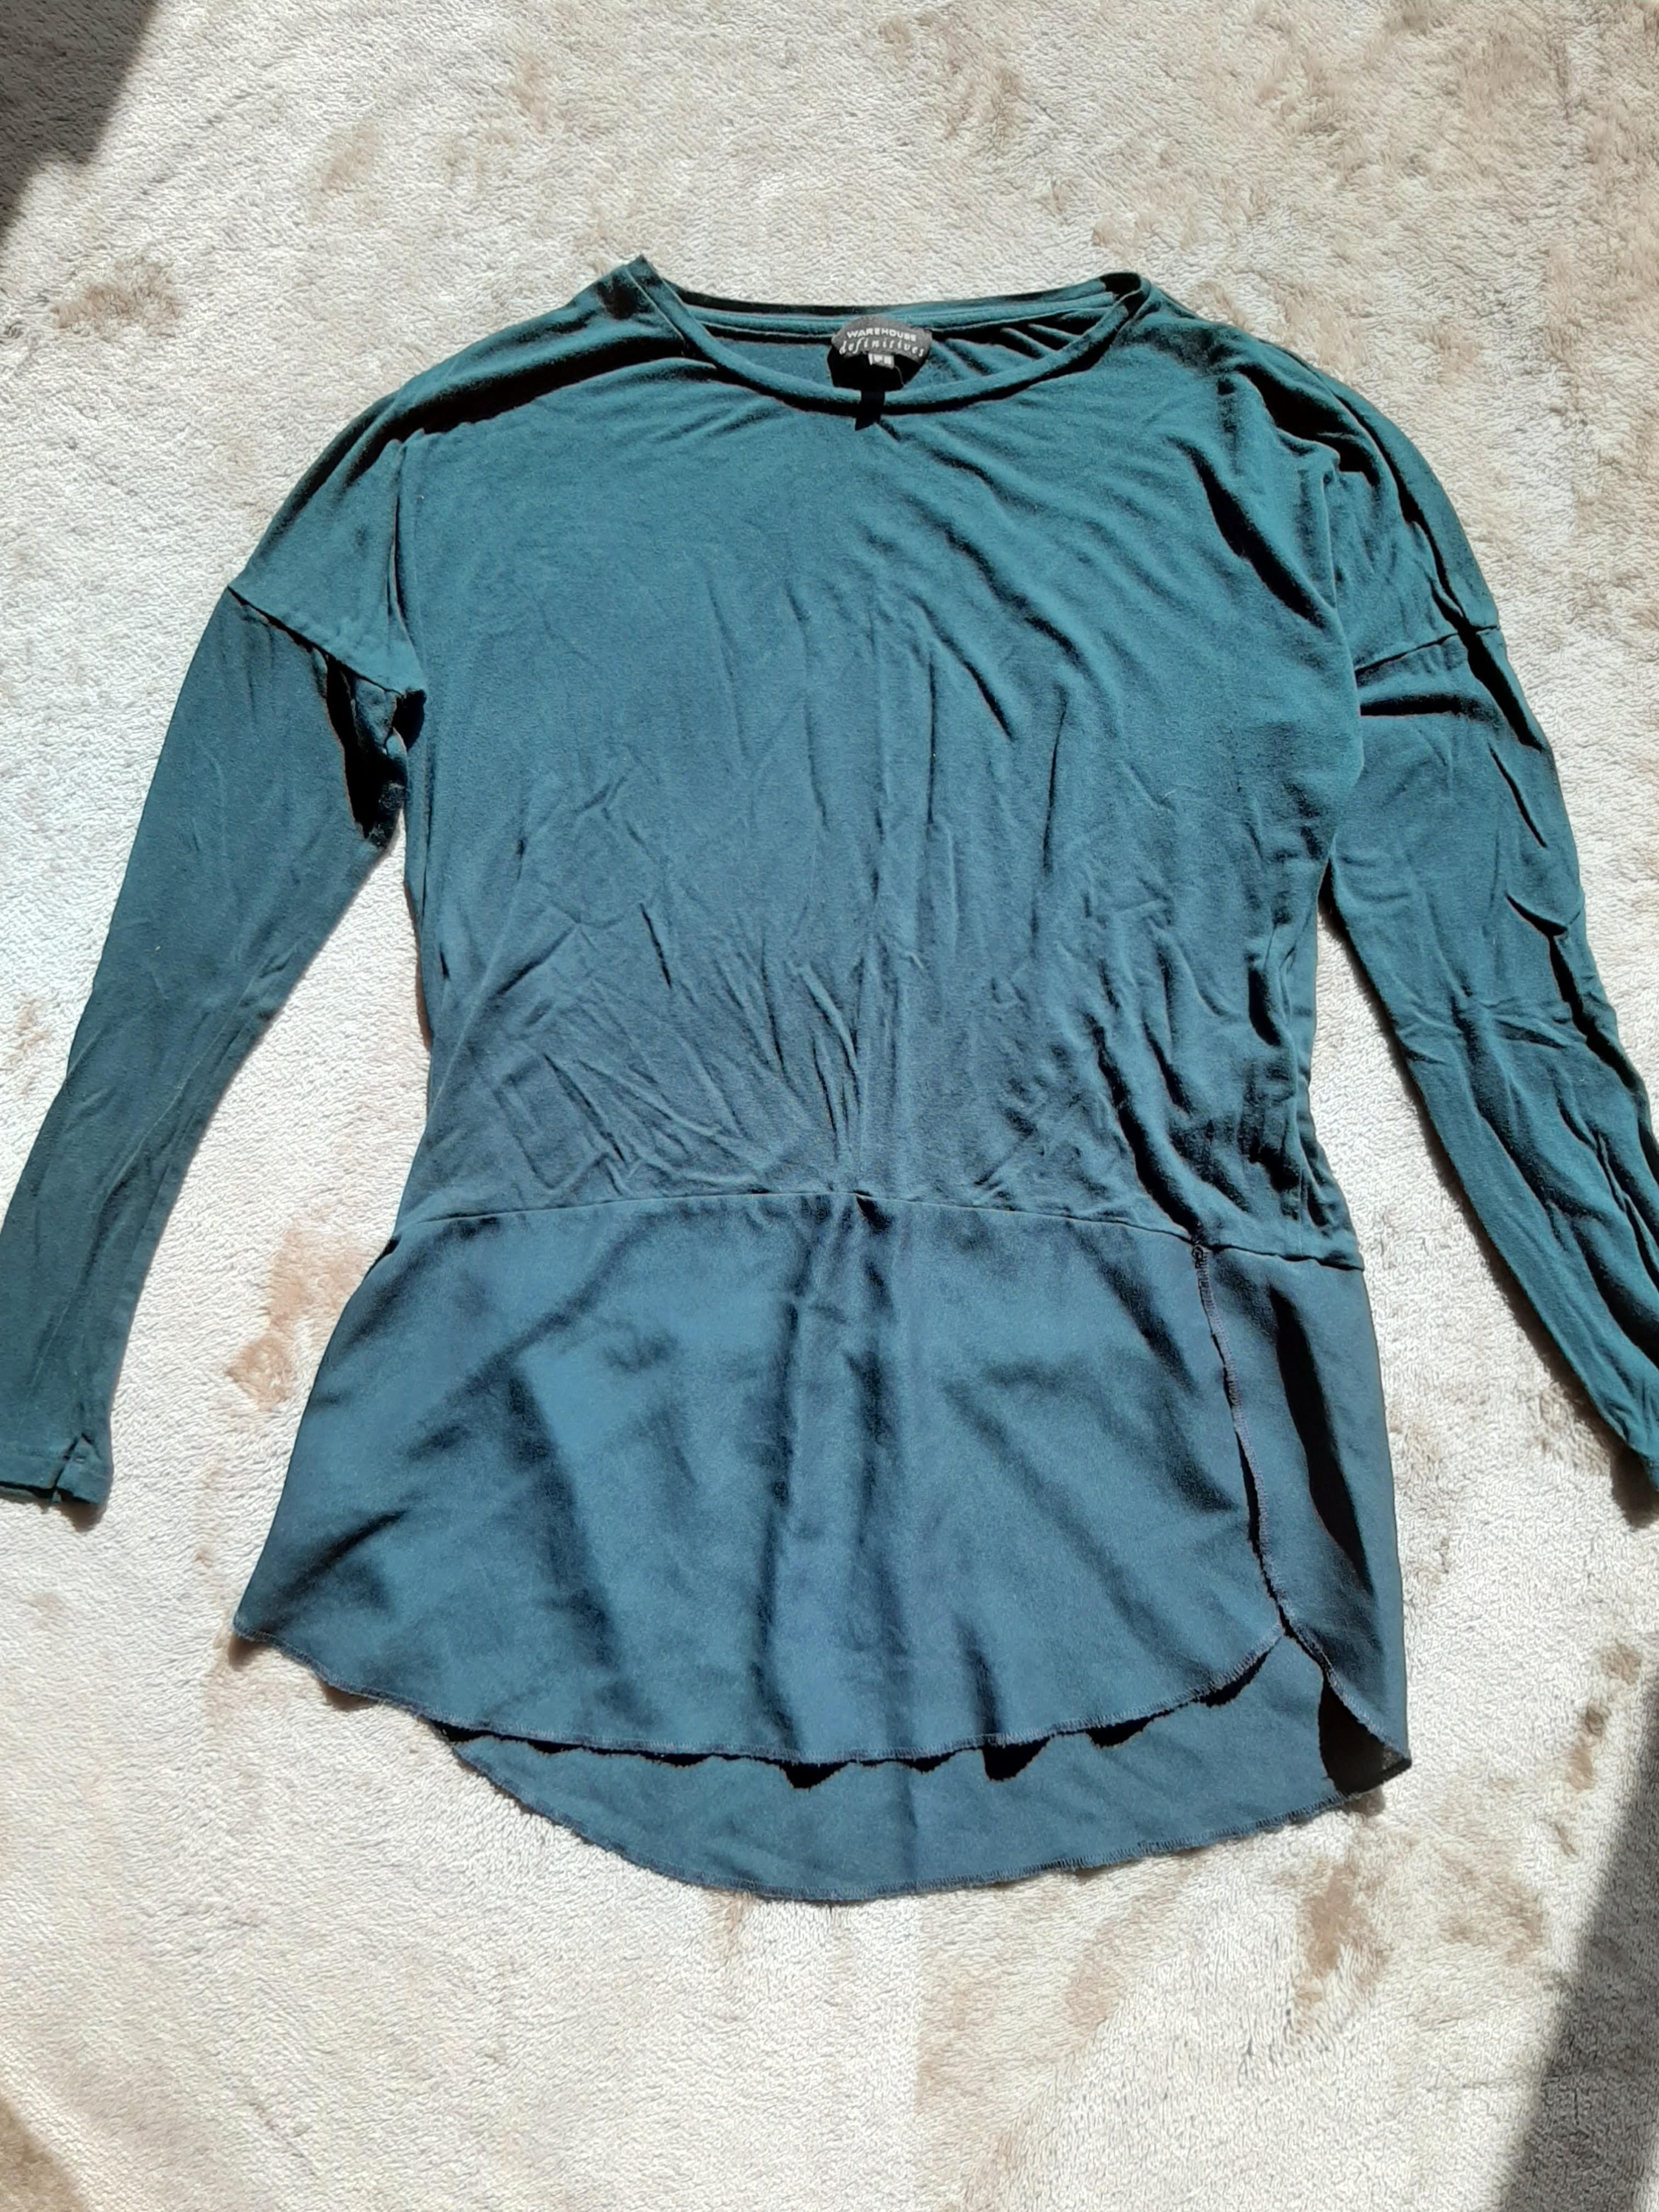 Emerald green long sleeve top